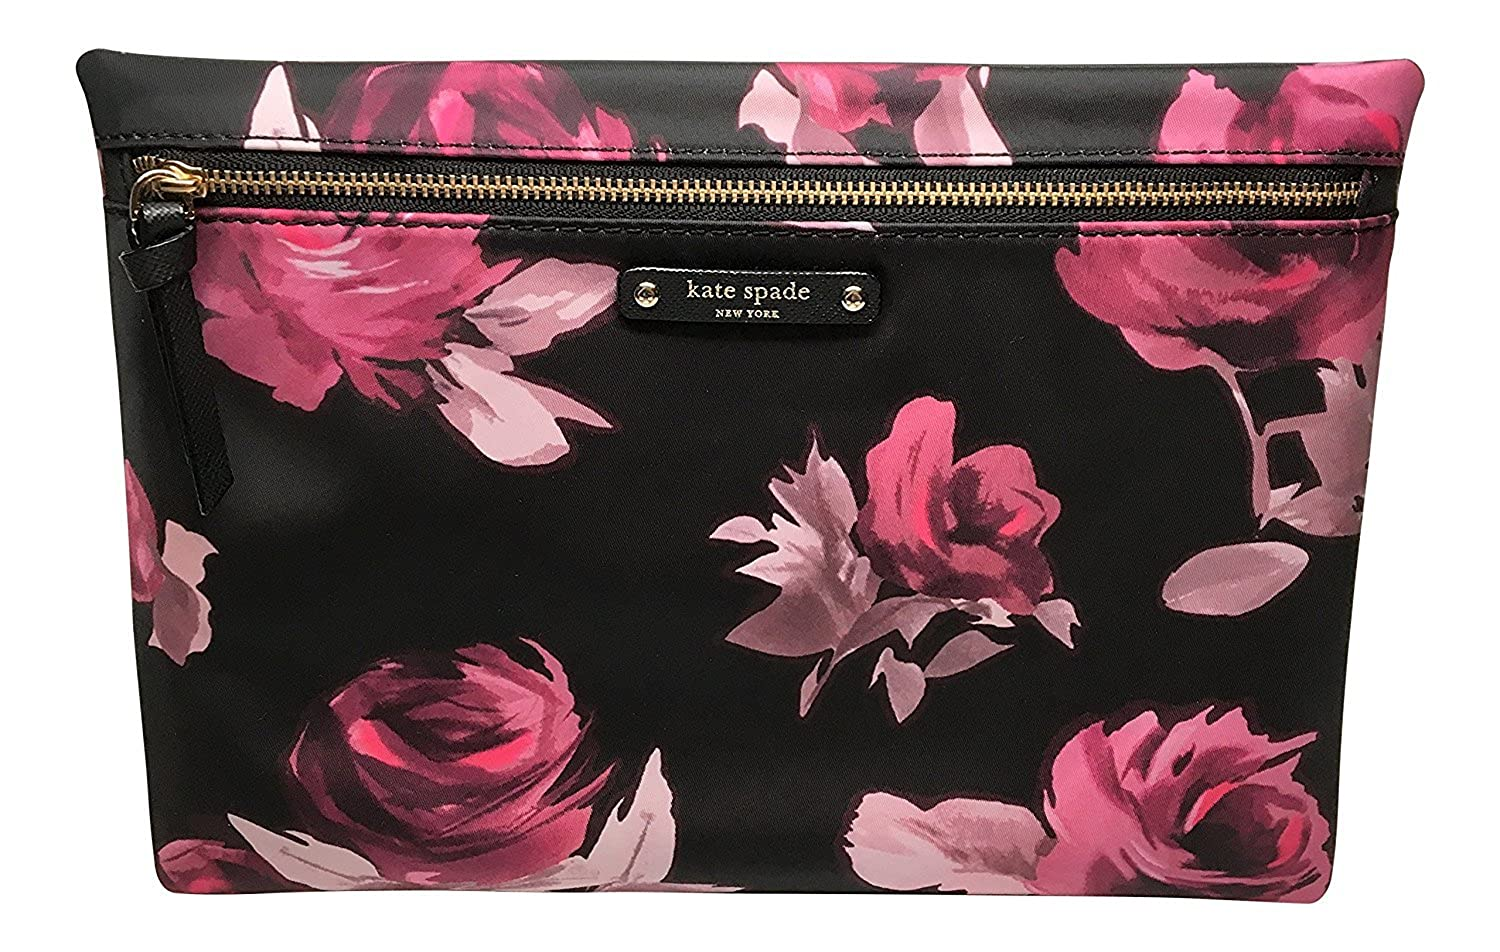 47061b8853 Amazon.com  Kate Spade Large Drewe Wilson Road Rose Symphony Pouch    Clutch  Clothing